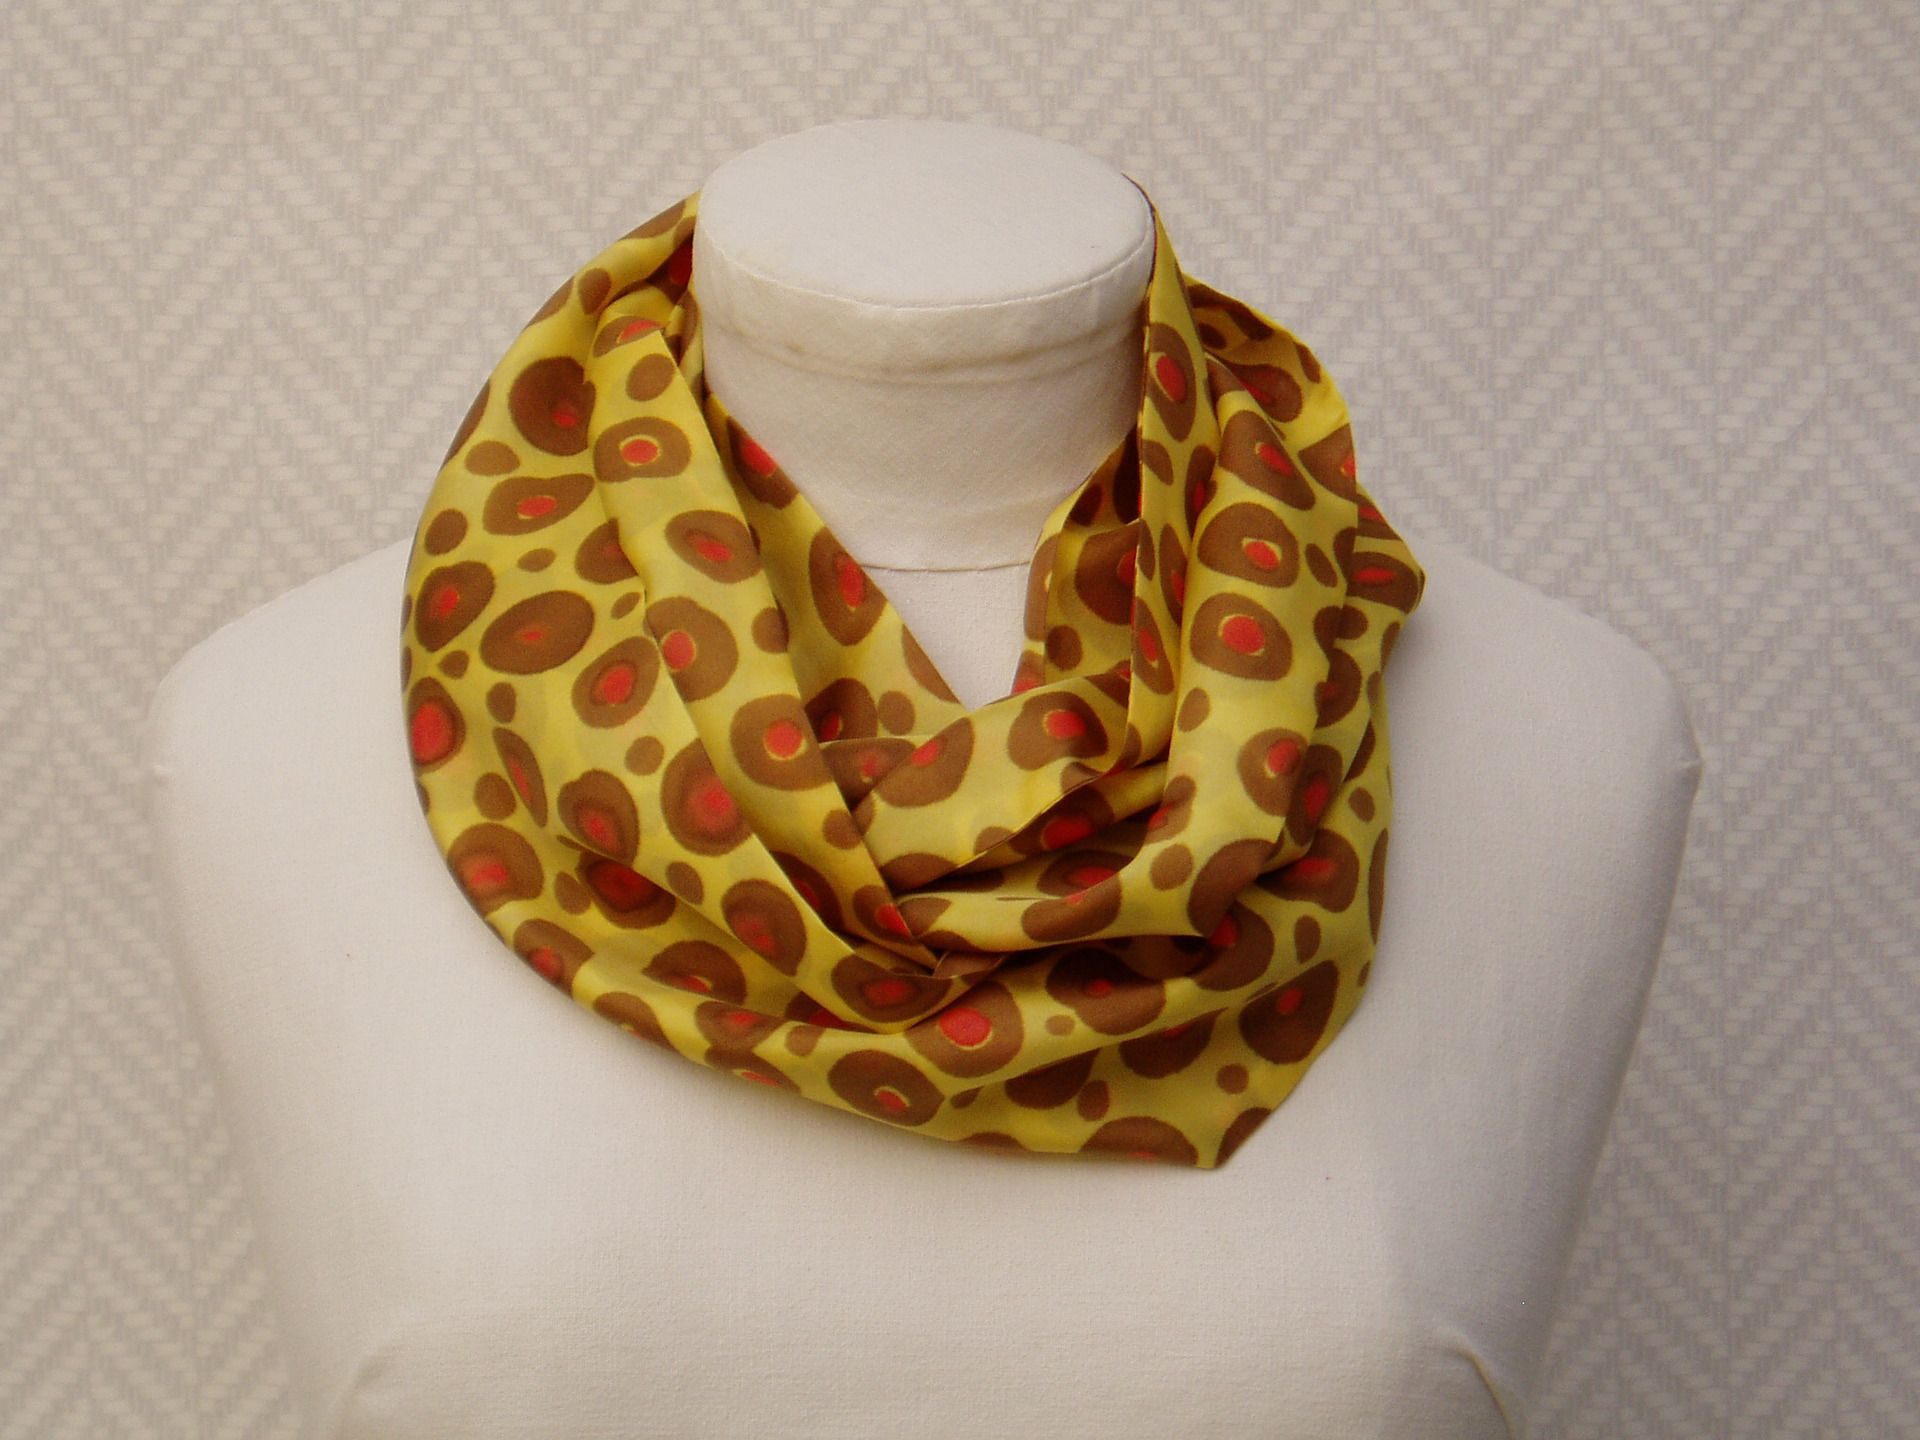 818269d5c90e Echarpe, snood, foulard en soie jaune moutarde, marron rouge peint main